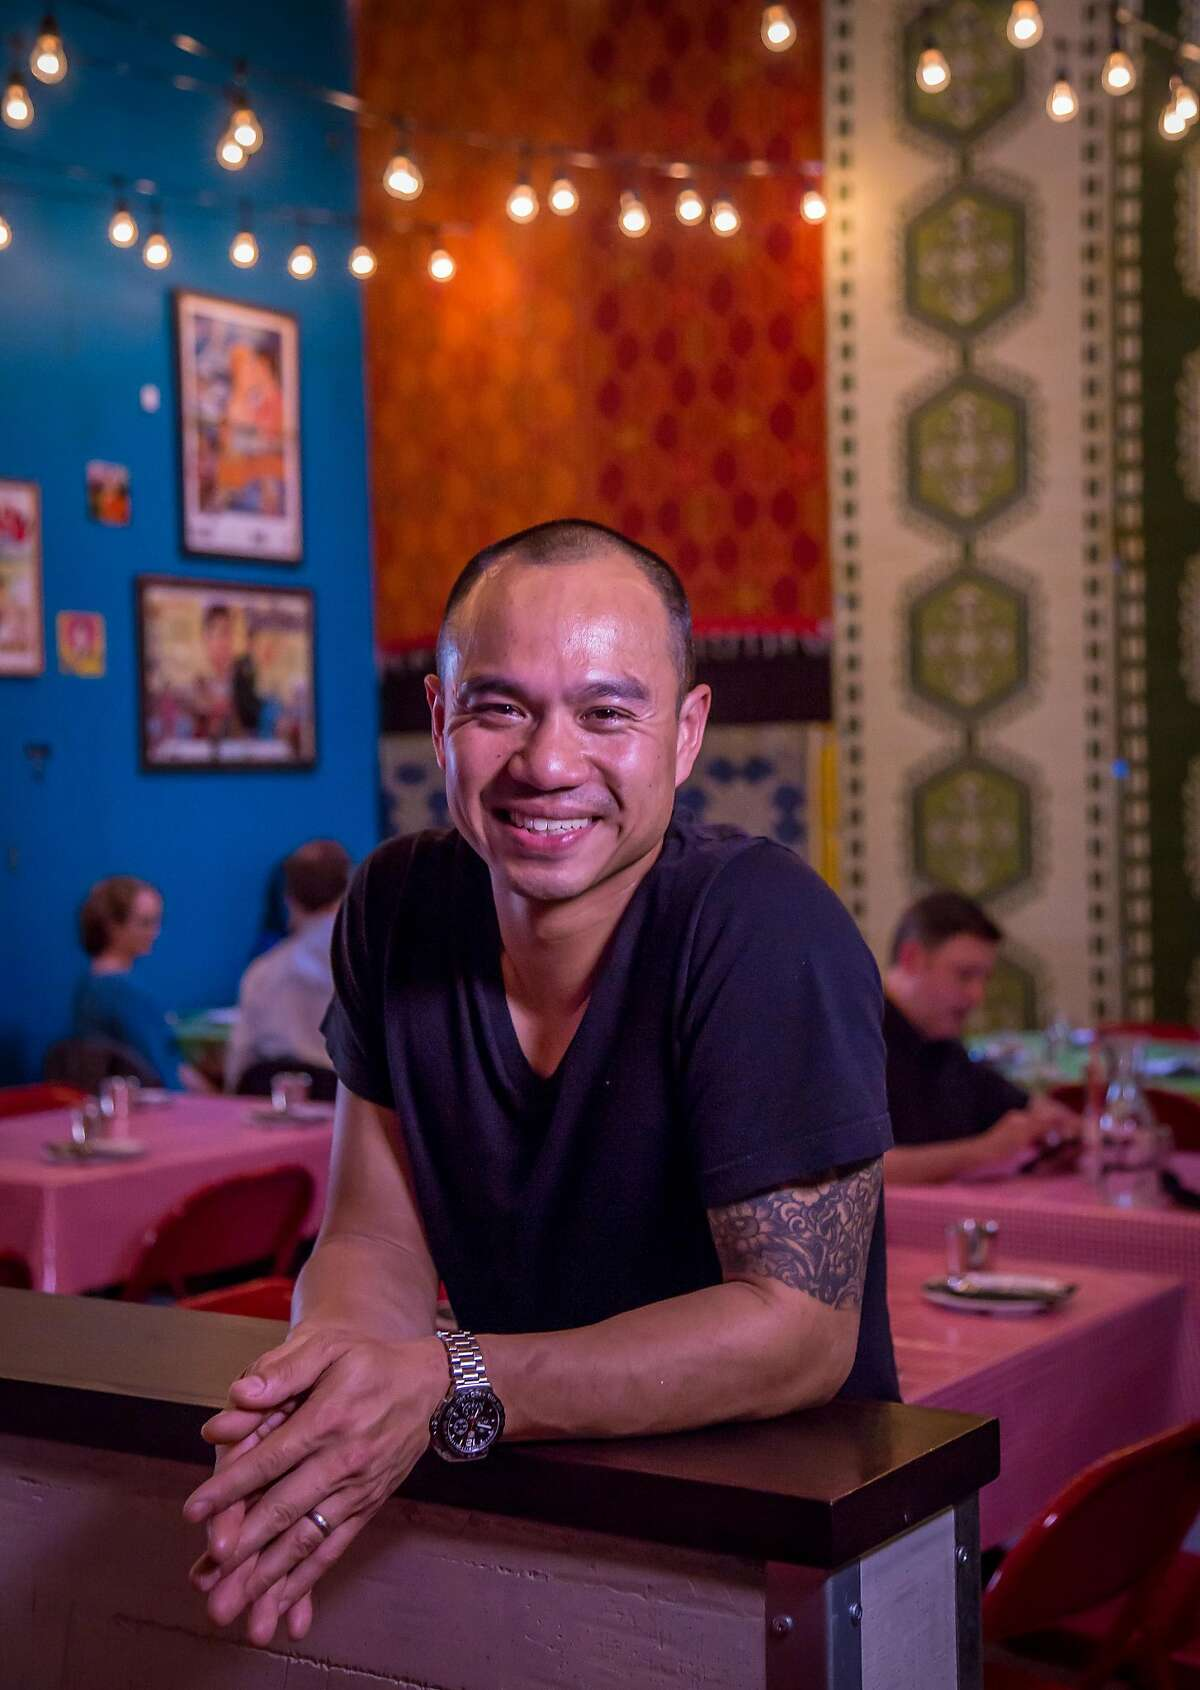 Chef James Syhabout at Hawker Fare in San Francisco, Calif., is seen on Thursday, March 19th, 2015.